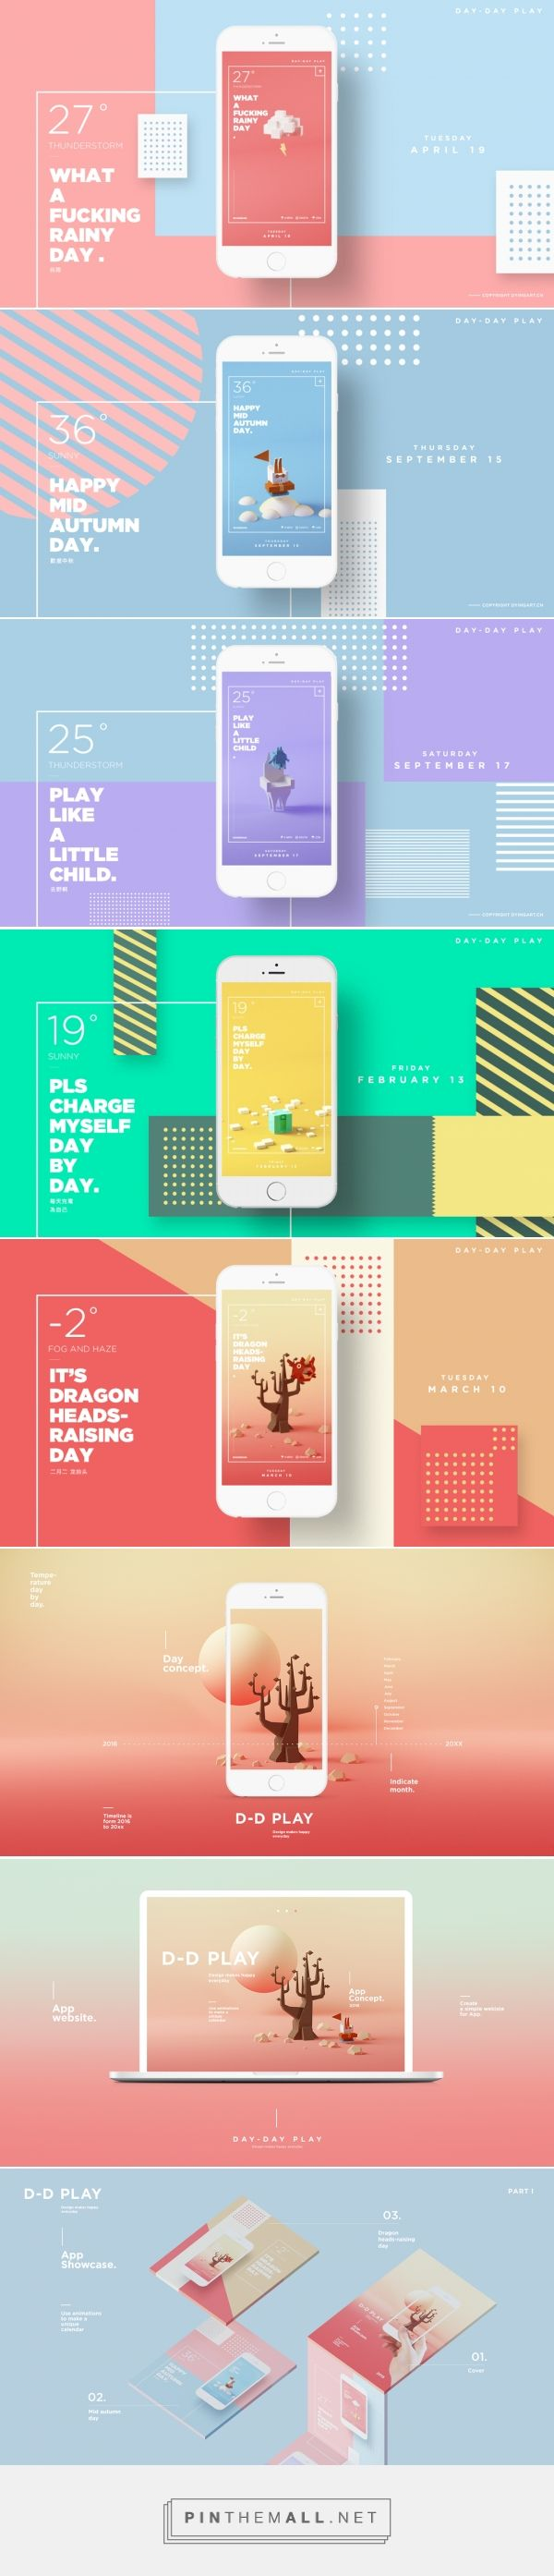 482 best Beautiful App / UI design images on Pinterest | User ...